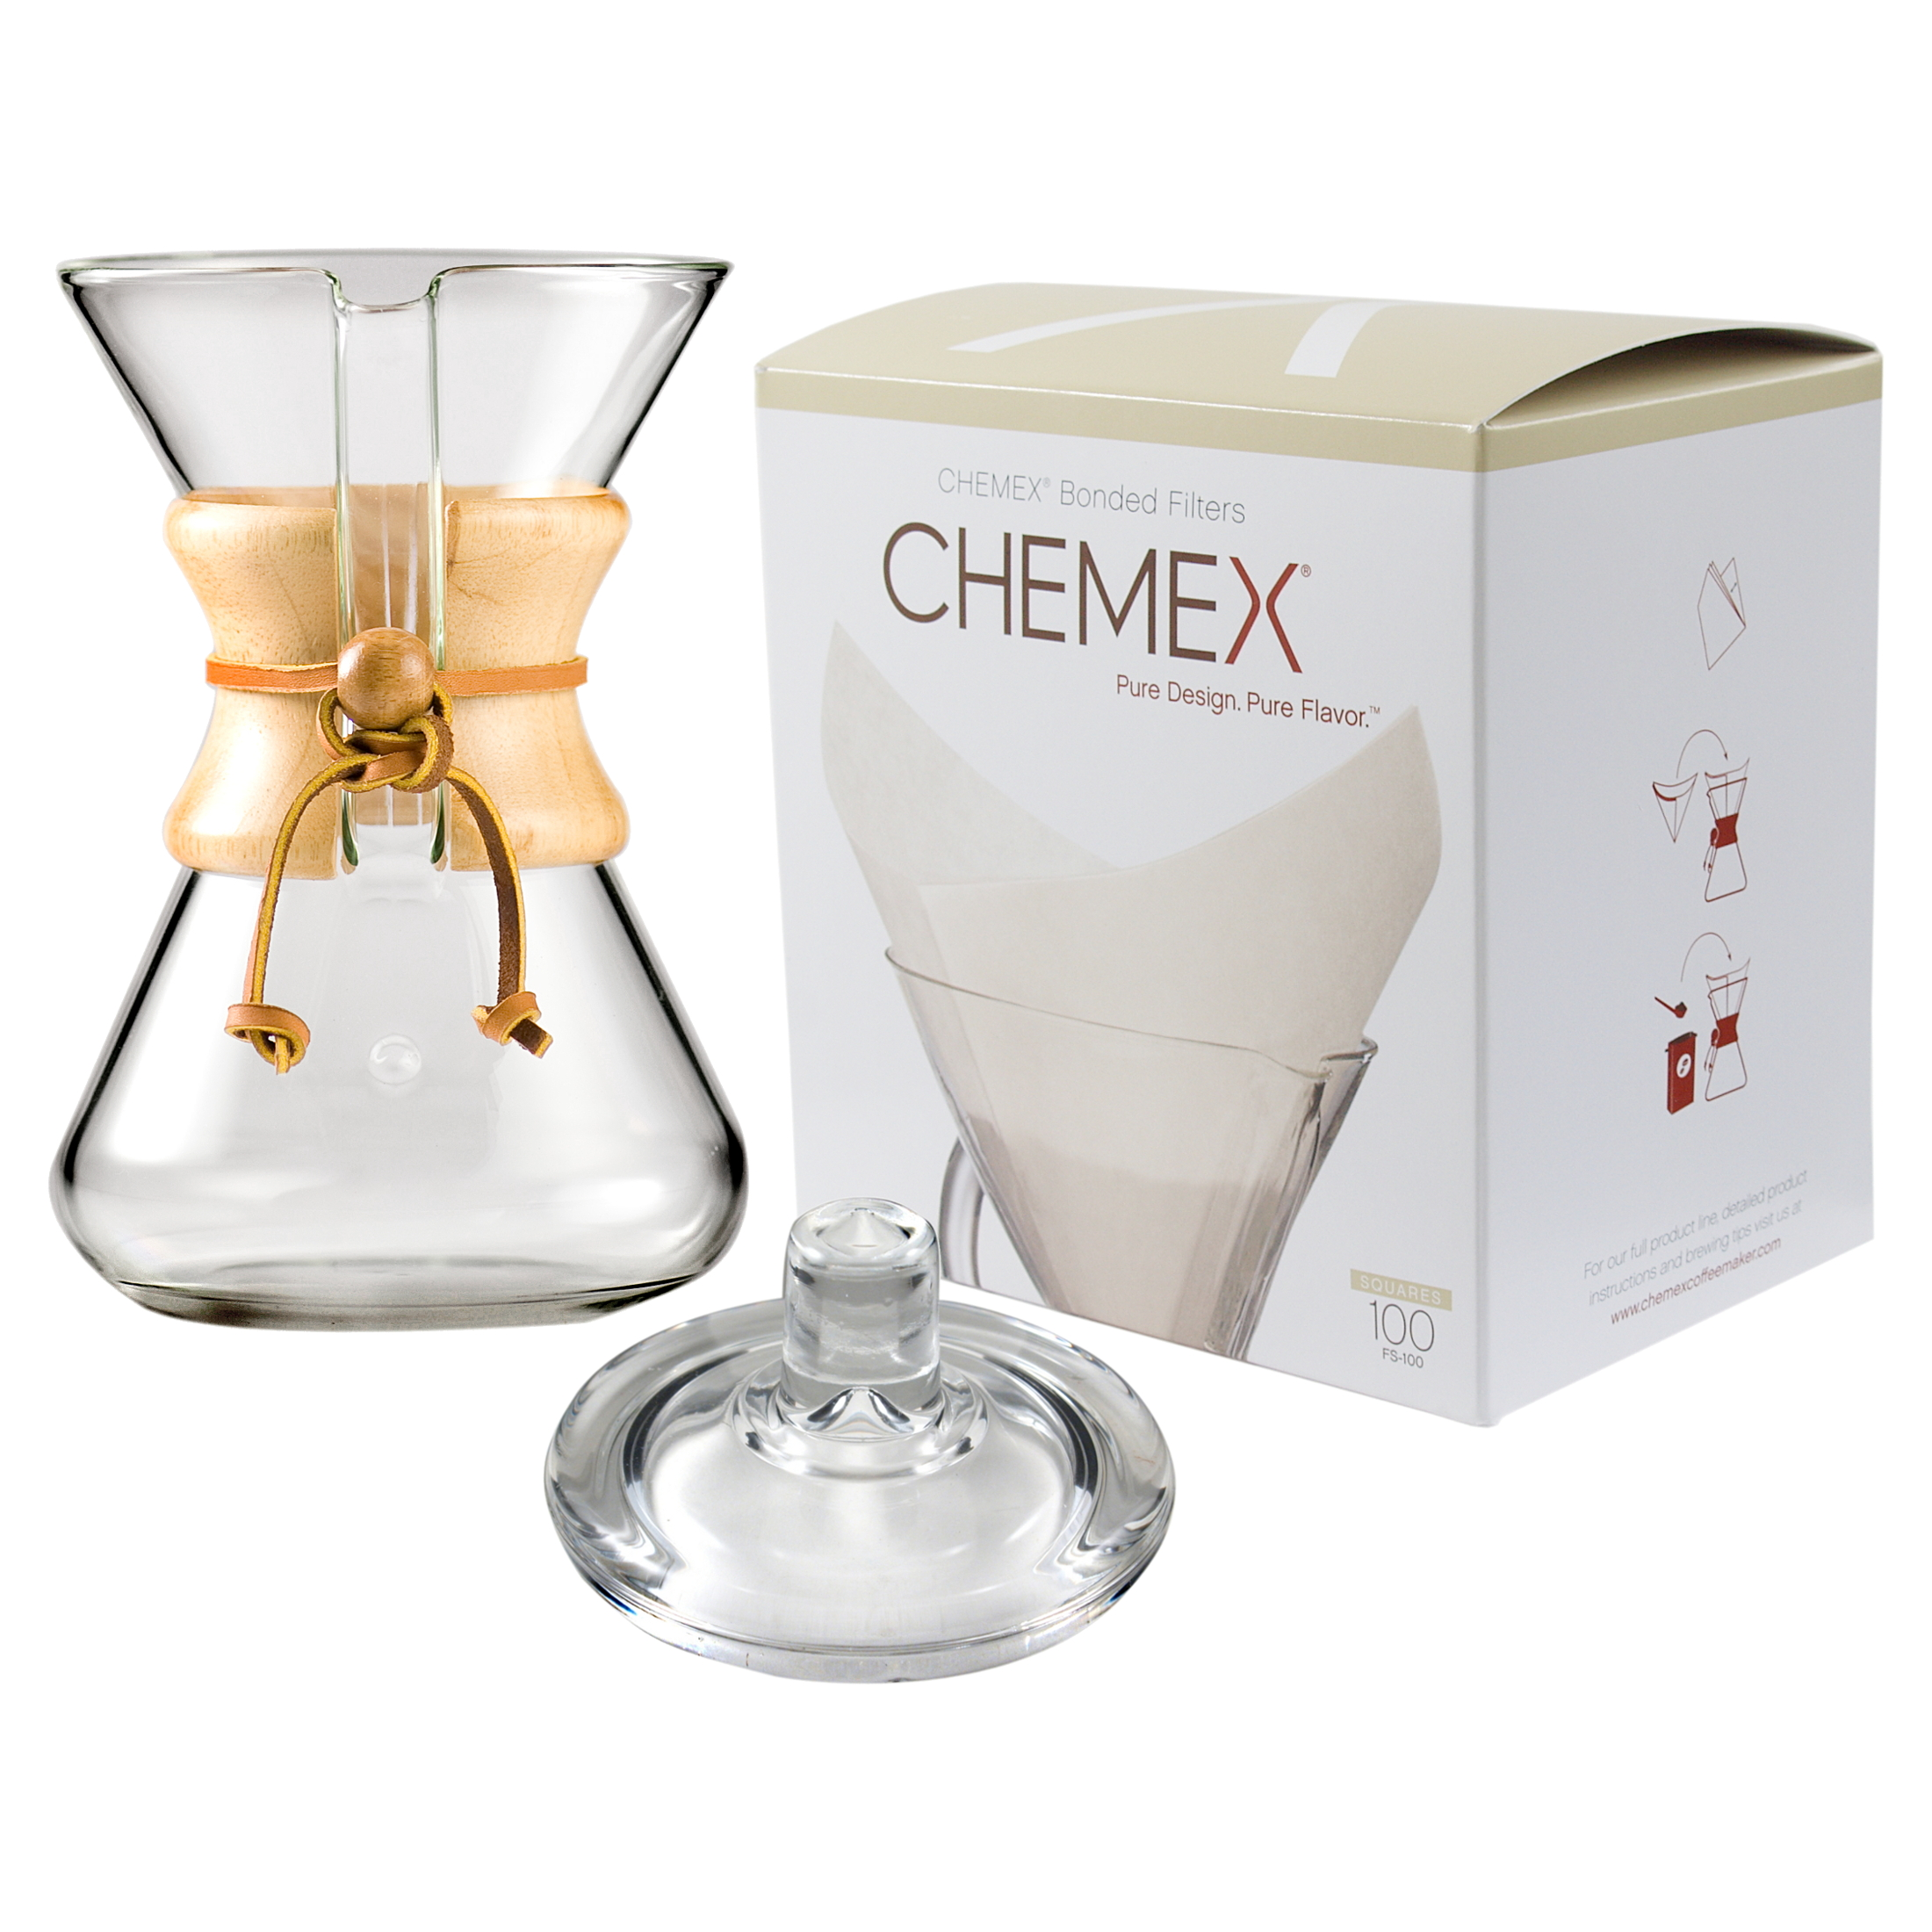 Chemex Wood Collar and Tie Glass 30 Ounce Coffee Maker with Cover and 100 Count Oxygen Cleansed Bonded Square Coffee Filters